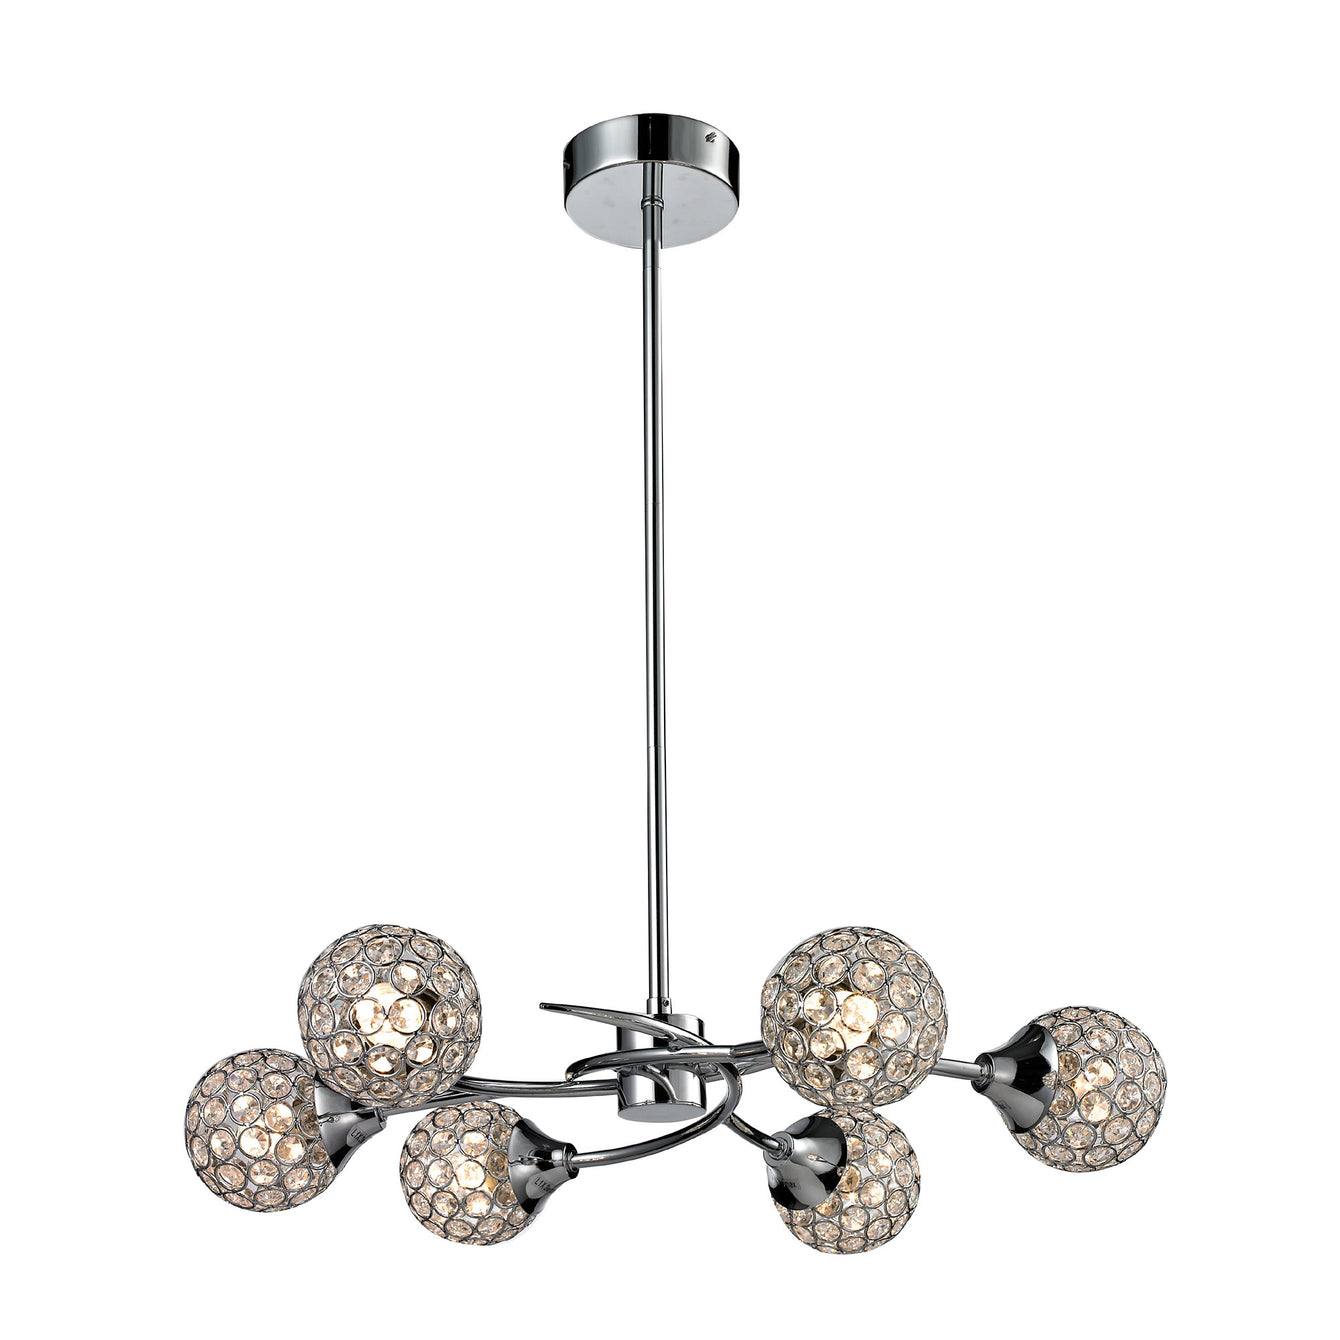 Gloucester 6 Arm Pendant LED Light - Buy It Better Default Title